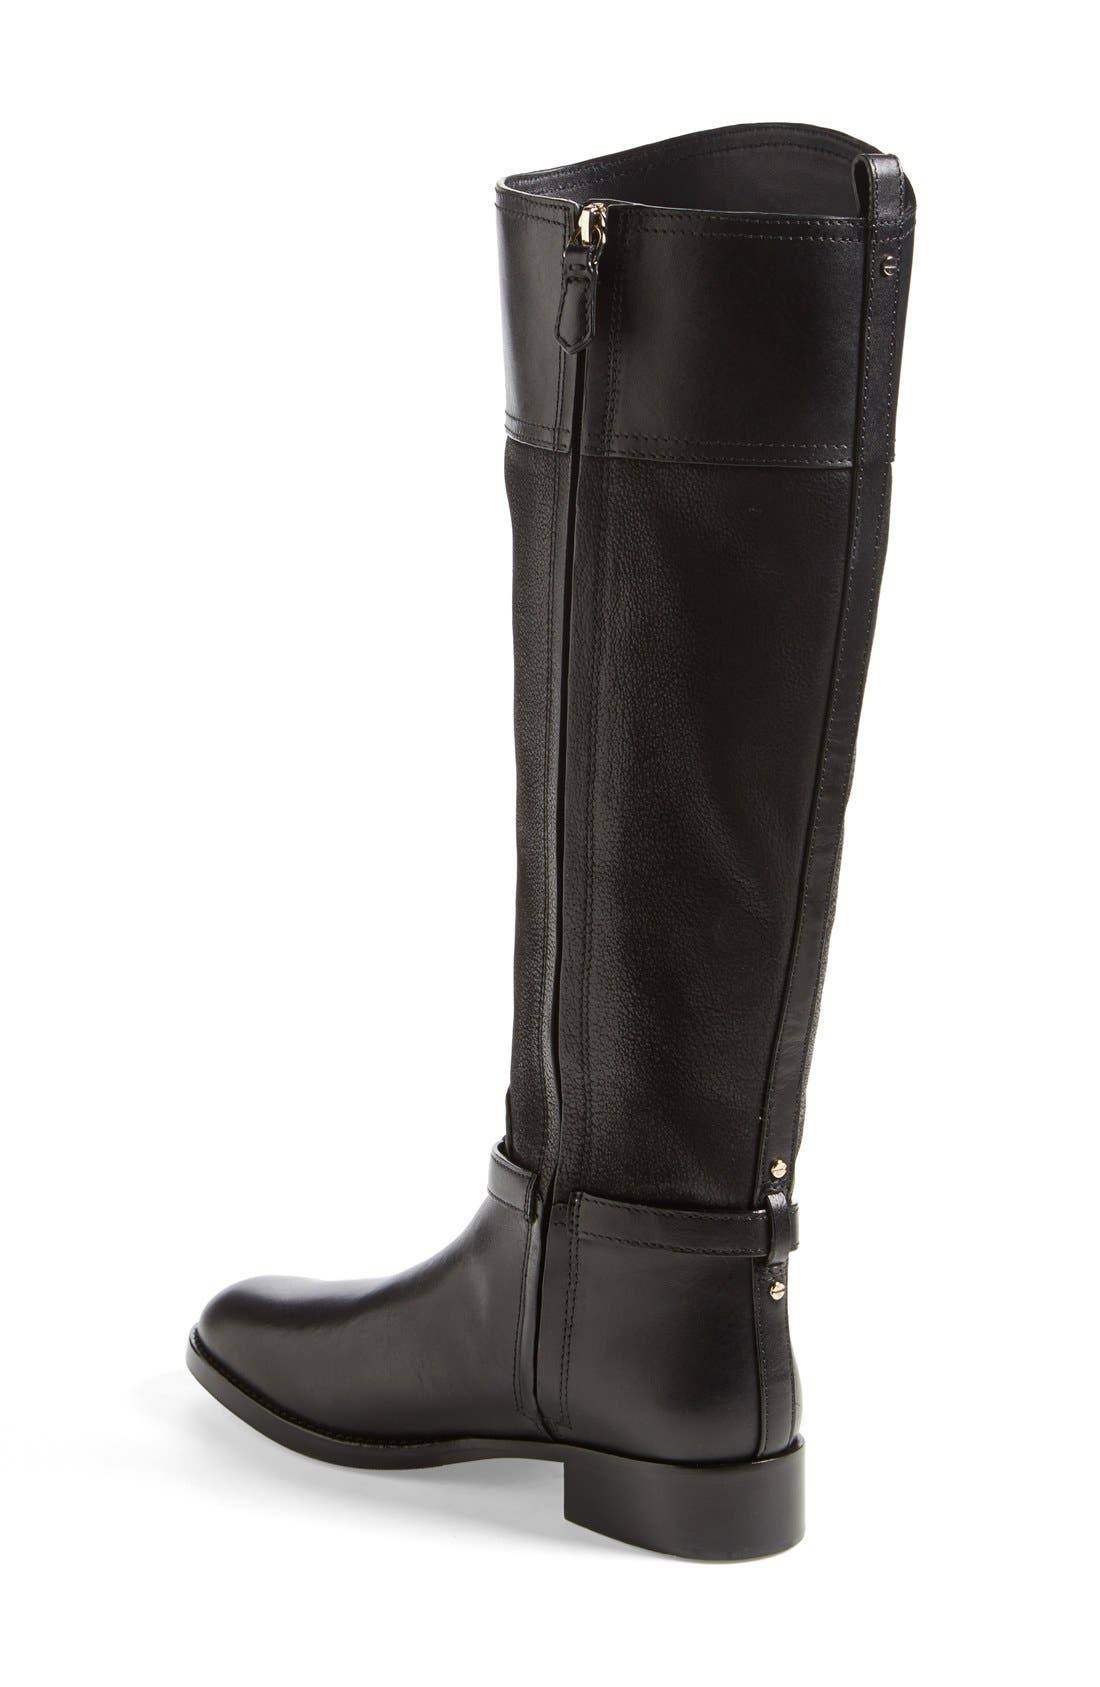 TORY BURCH, 'Simone' Riding Boot, Alternate thumbnail 3, color, 009